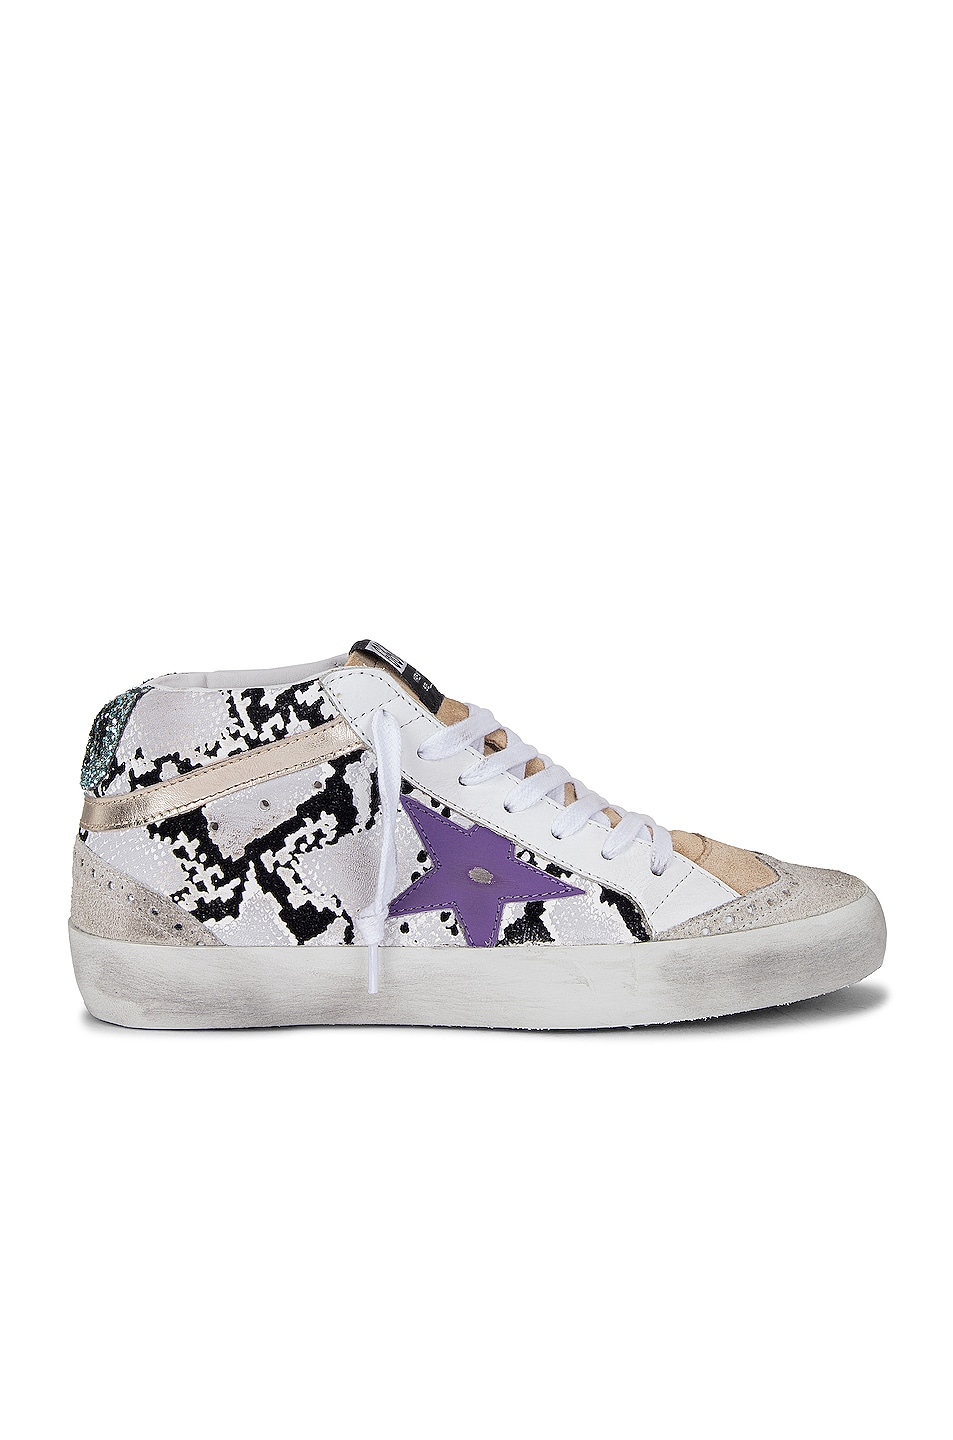 Image 1 of Golden Goose Mid Star Sneaker in Grey Phyton, Ice, Cappuccino, Purple & Platinum